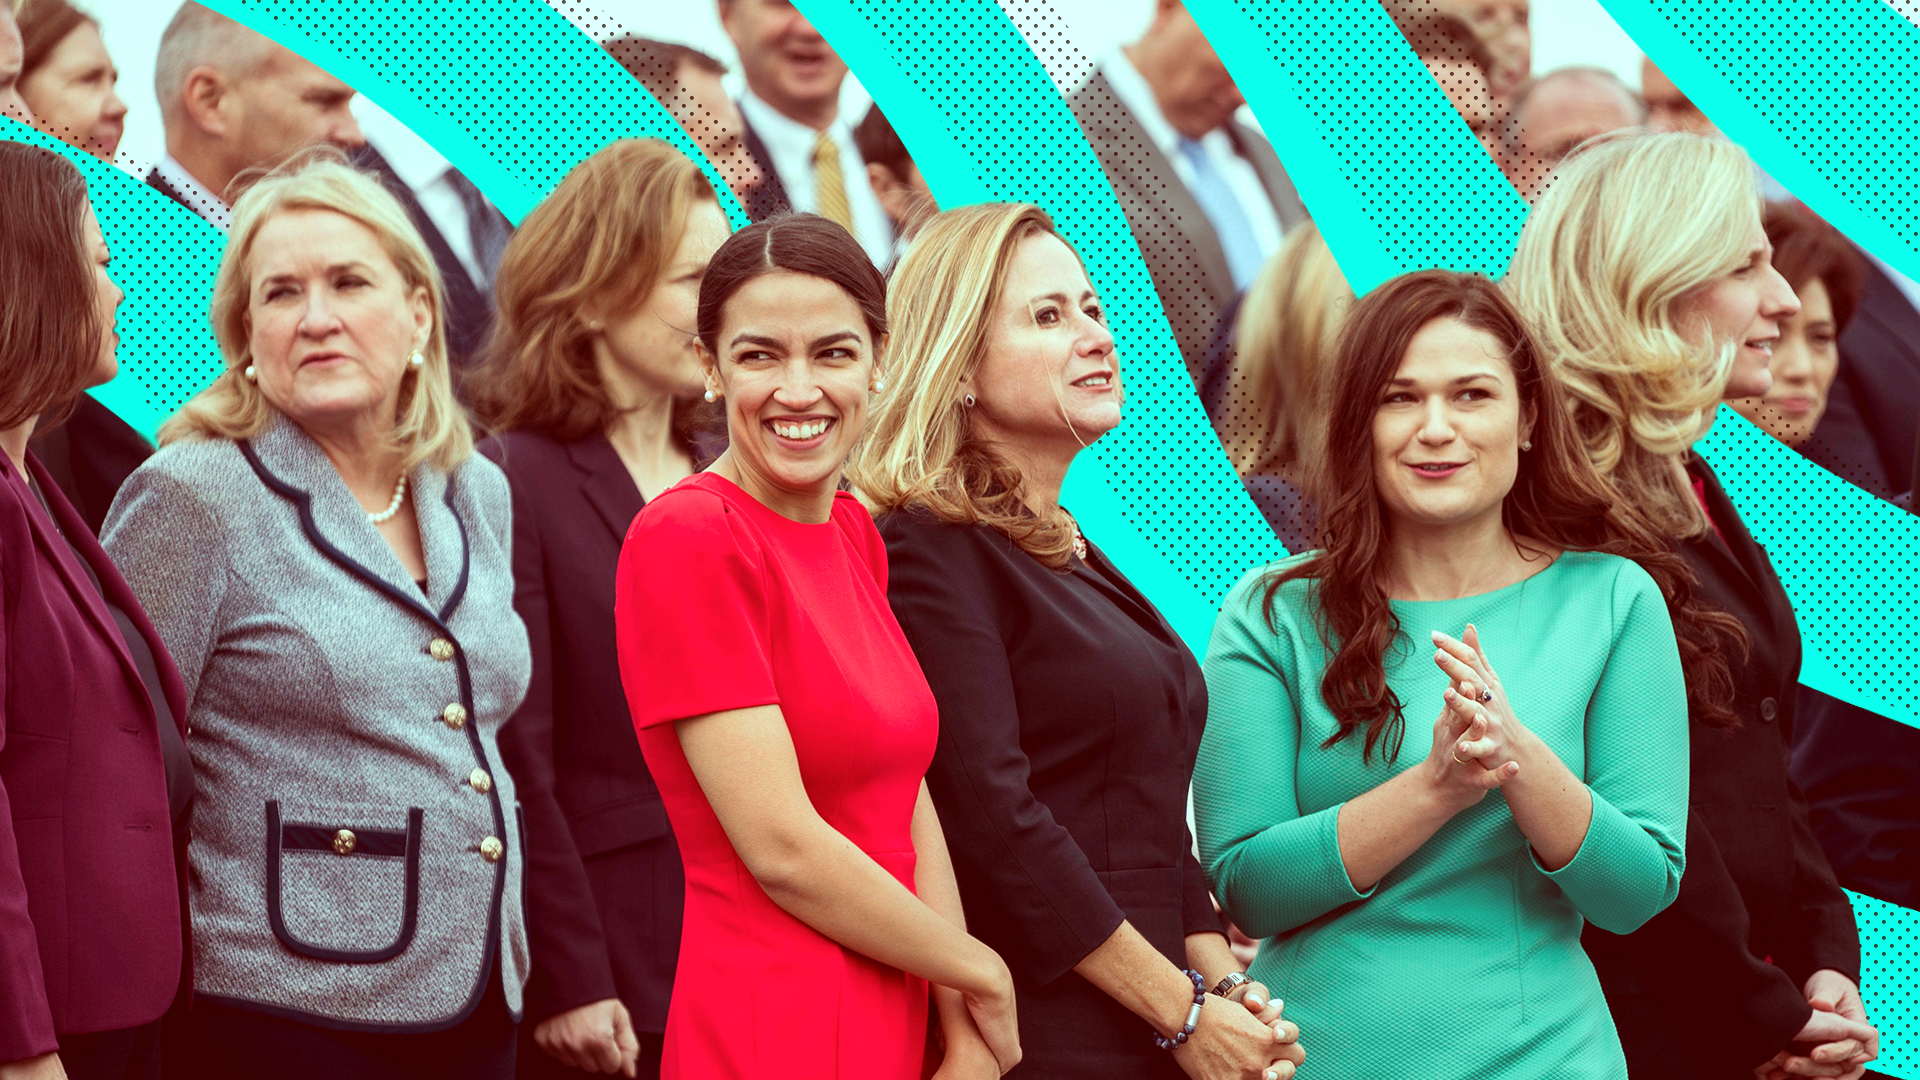 How to close the massive gender gap in Congress